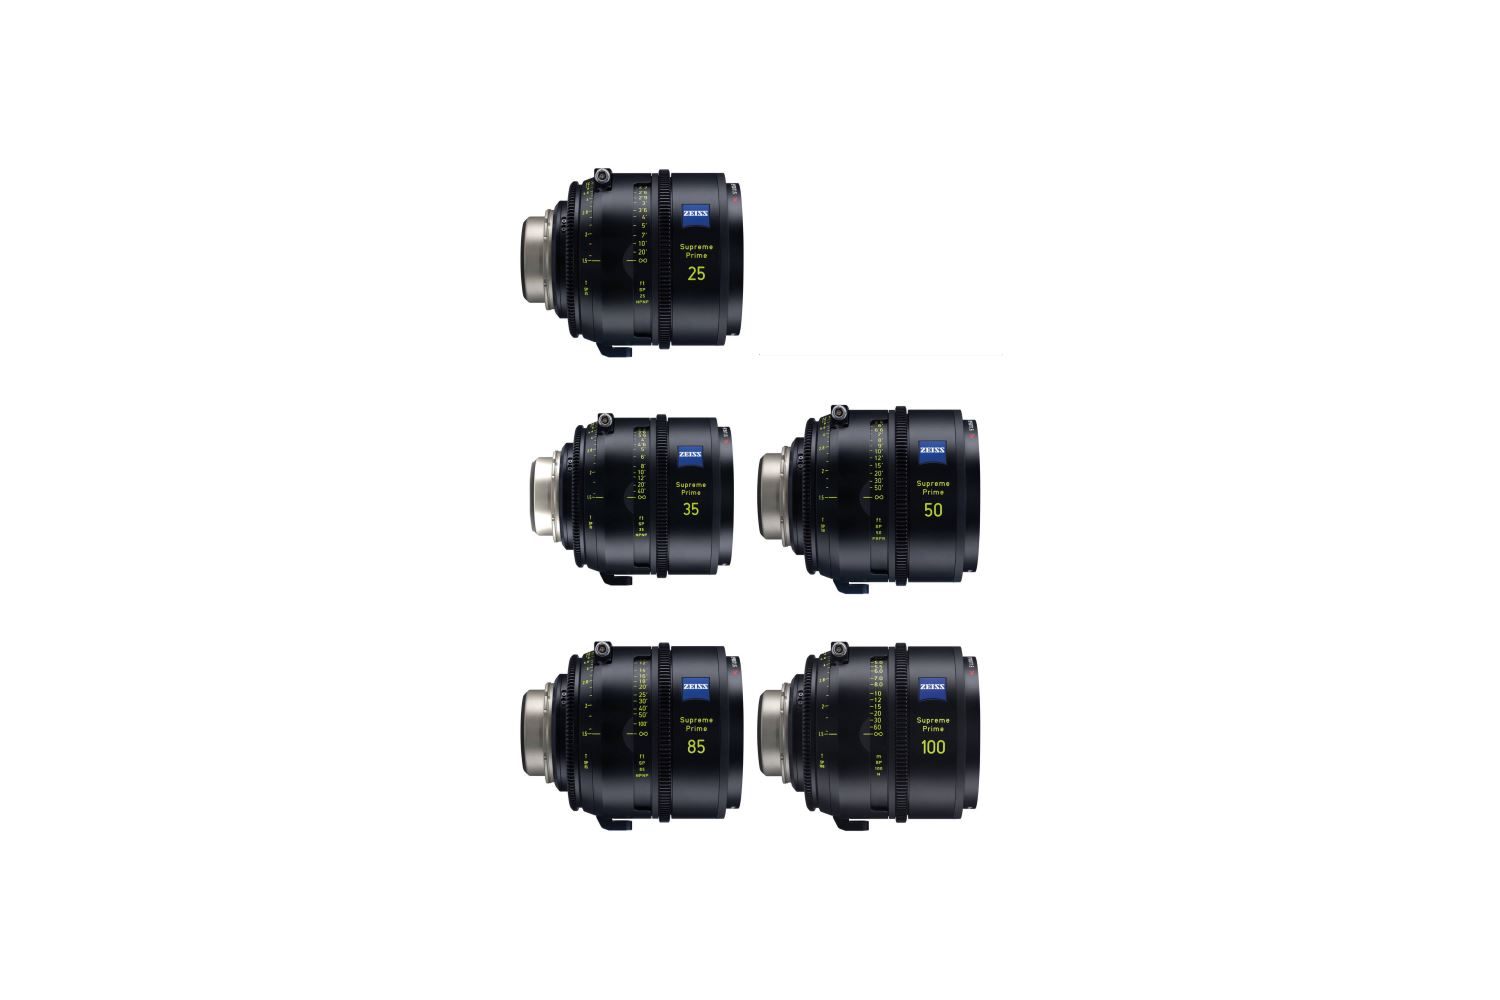 Zeiss Supreme Prime Lens (25, 35, 50, 85 or 100 mm) - 300 EUR/piece/day, 1100 EUR/piece/week